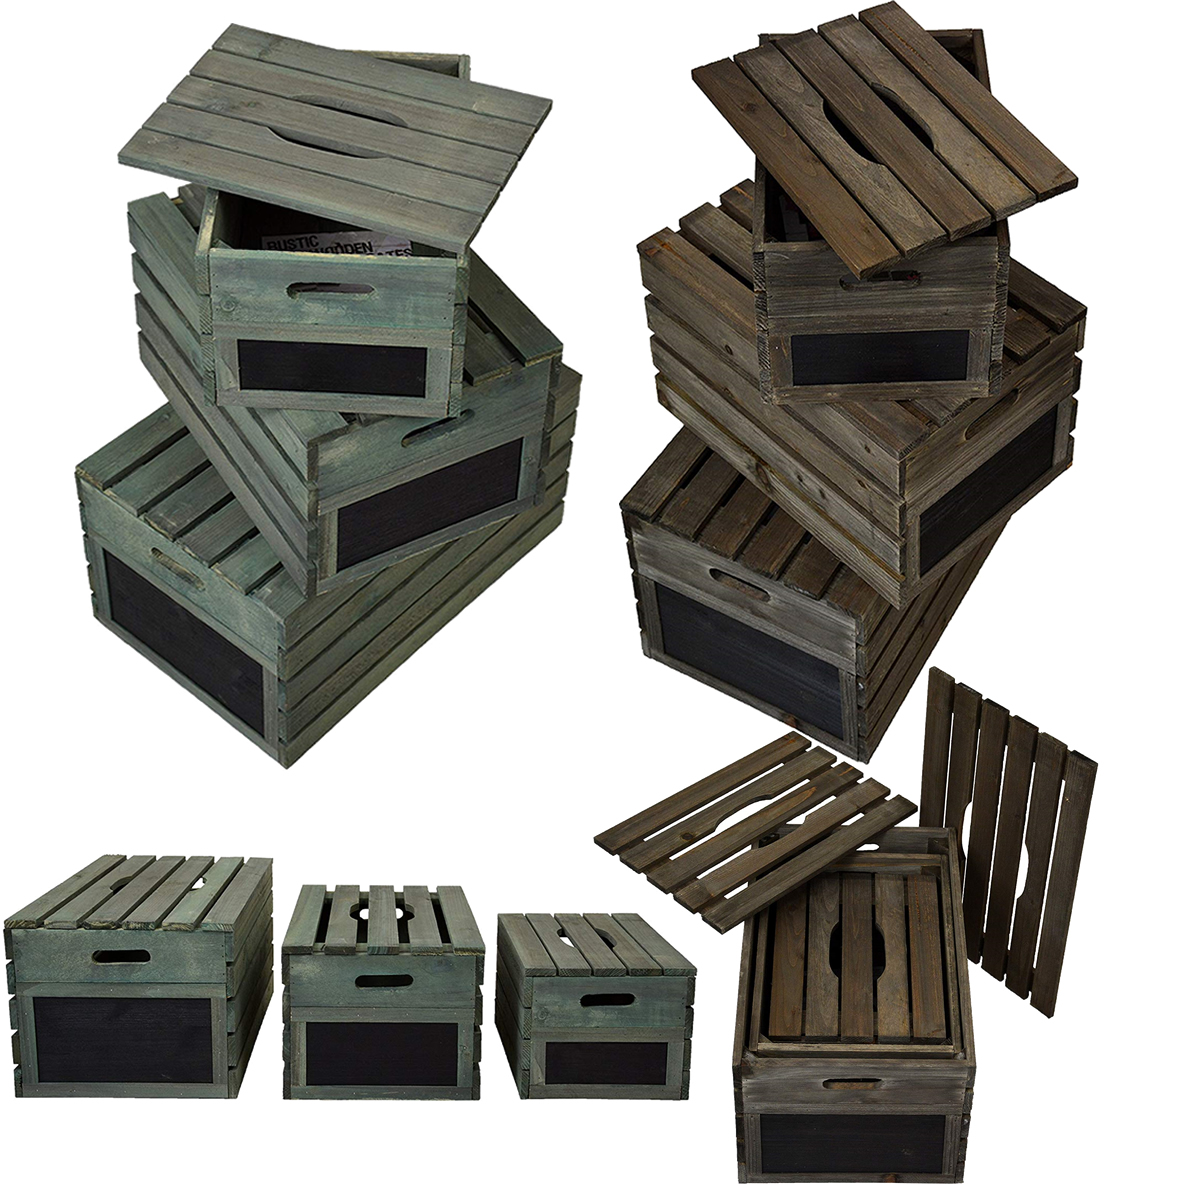 Details About Rustic Wooden Crates With Lids Retail Display Shelf Box Storage Gift Hampers New